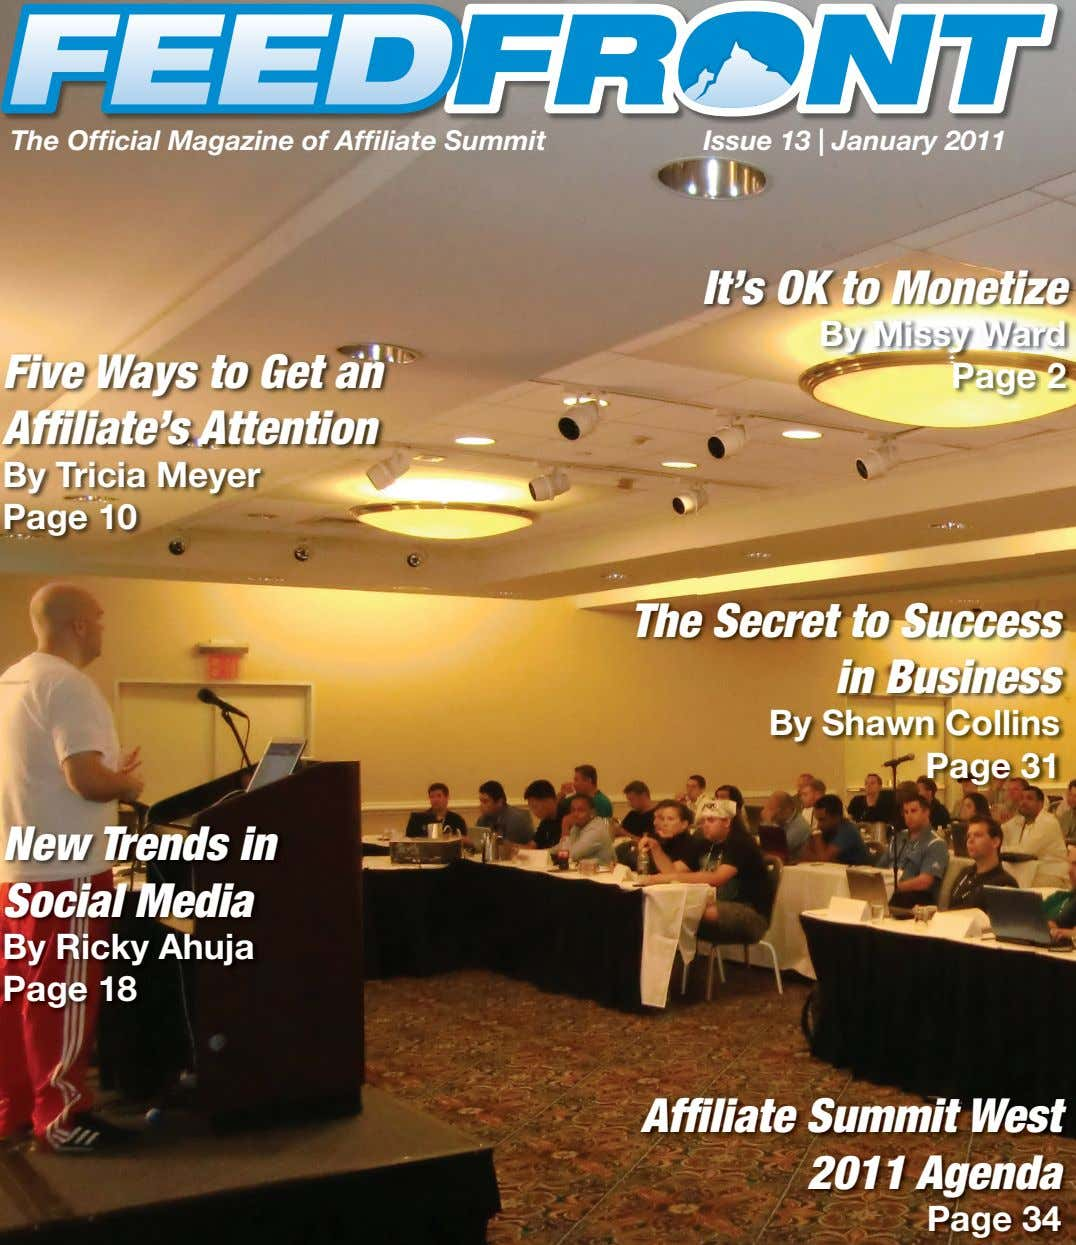 The Official Magazine of Affiliate Summit Issue 13 | January 2011 It's OK to Monetize